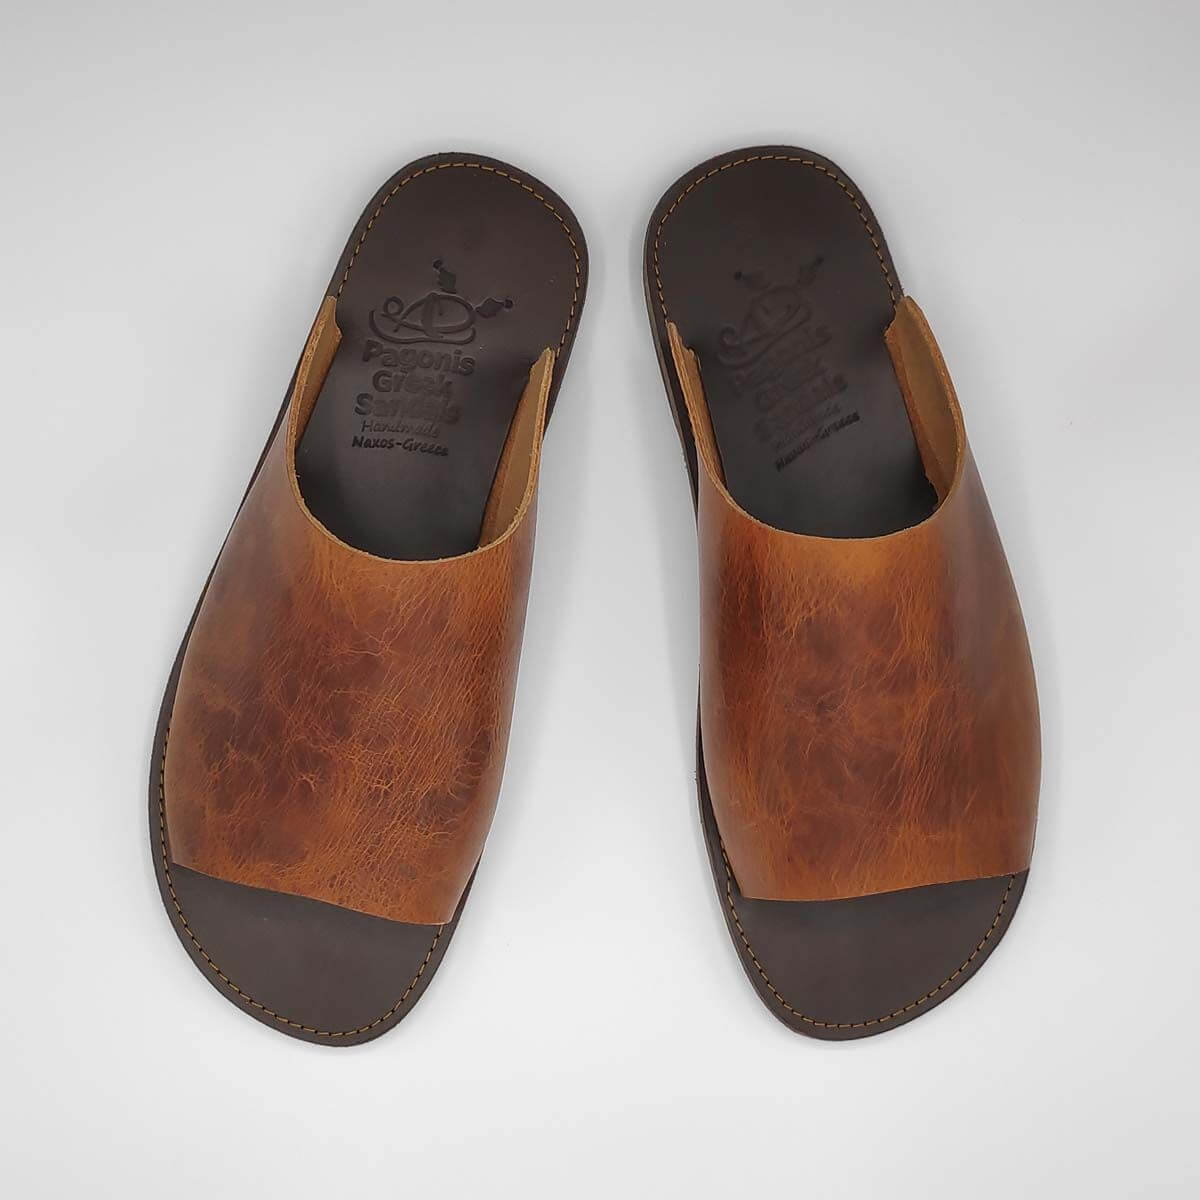 Sozon Mens Leather Mule Sandals | Pagonis Greek Sandals